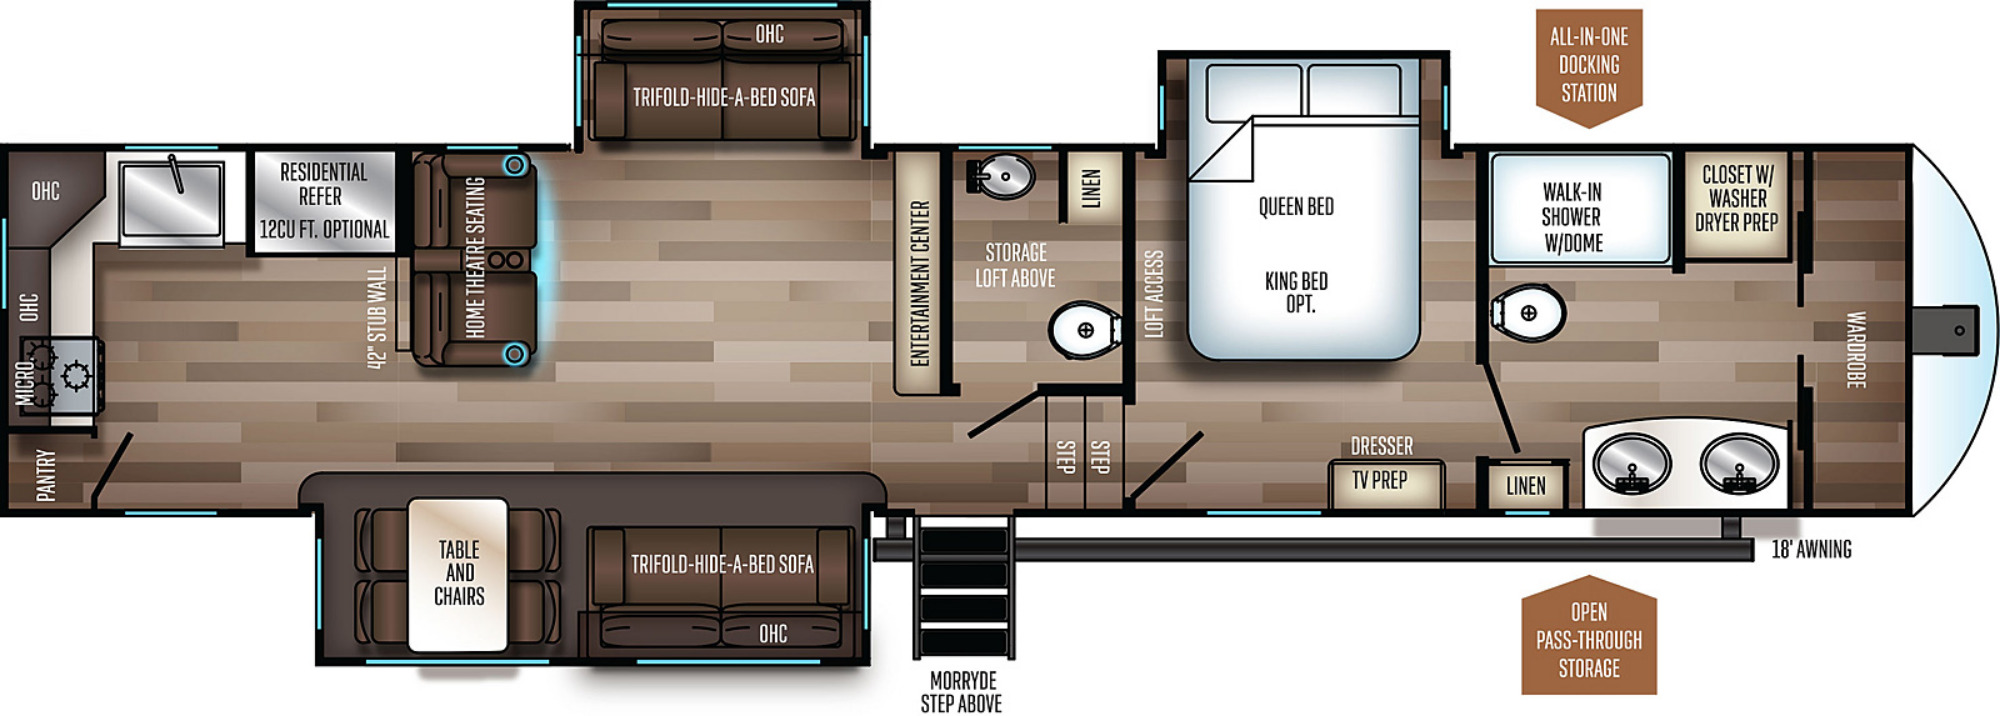 View Floor Plan for 2021 FOREST RIVER SABRE 37FBT